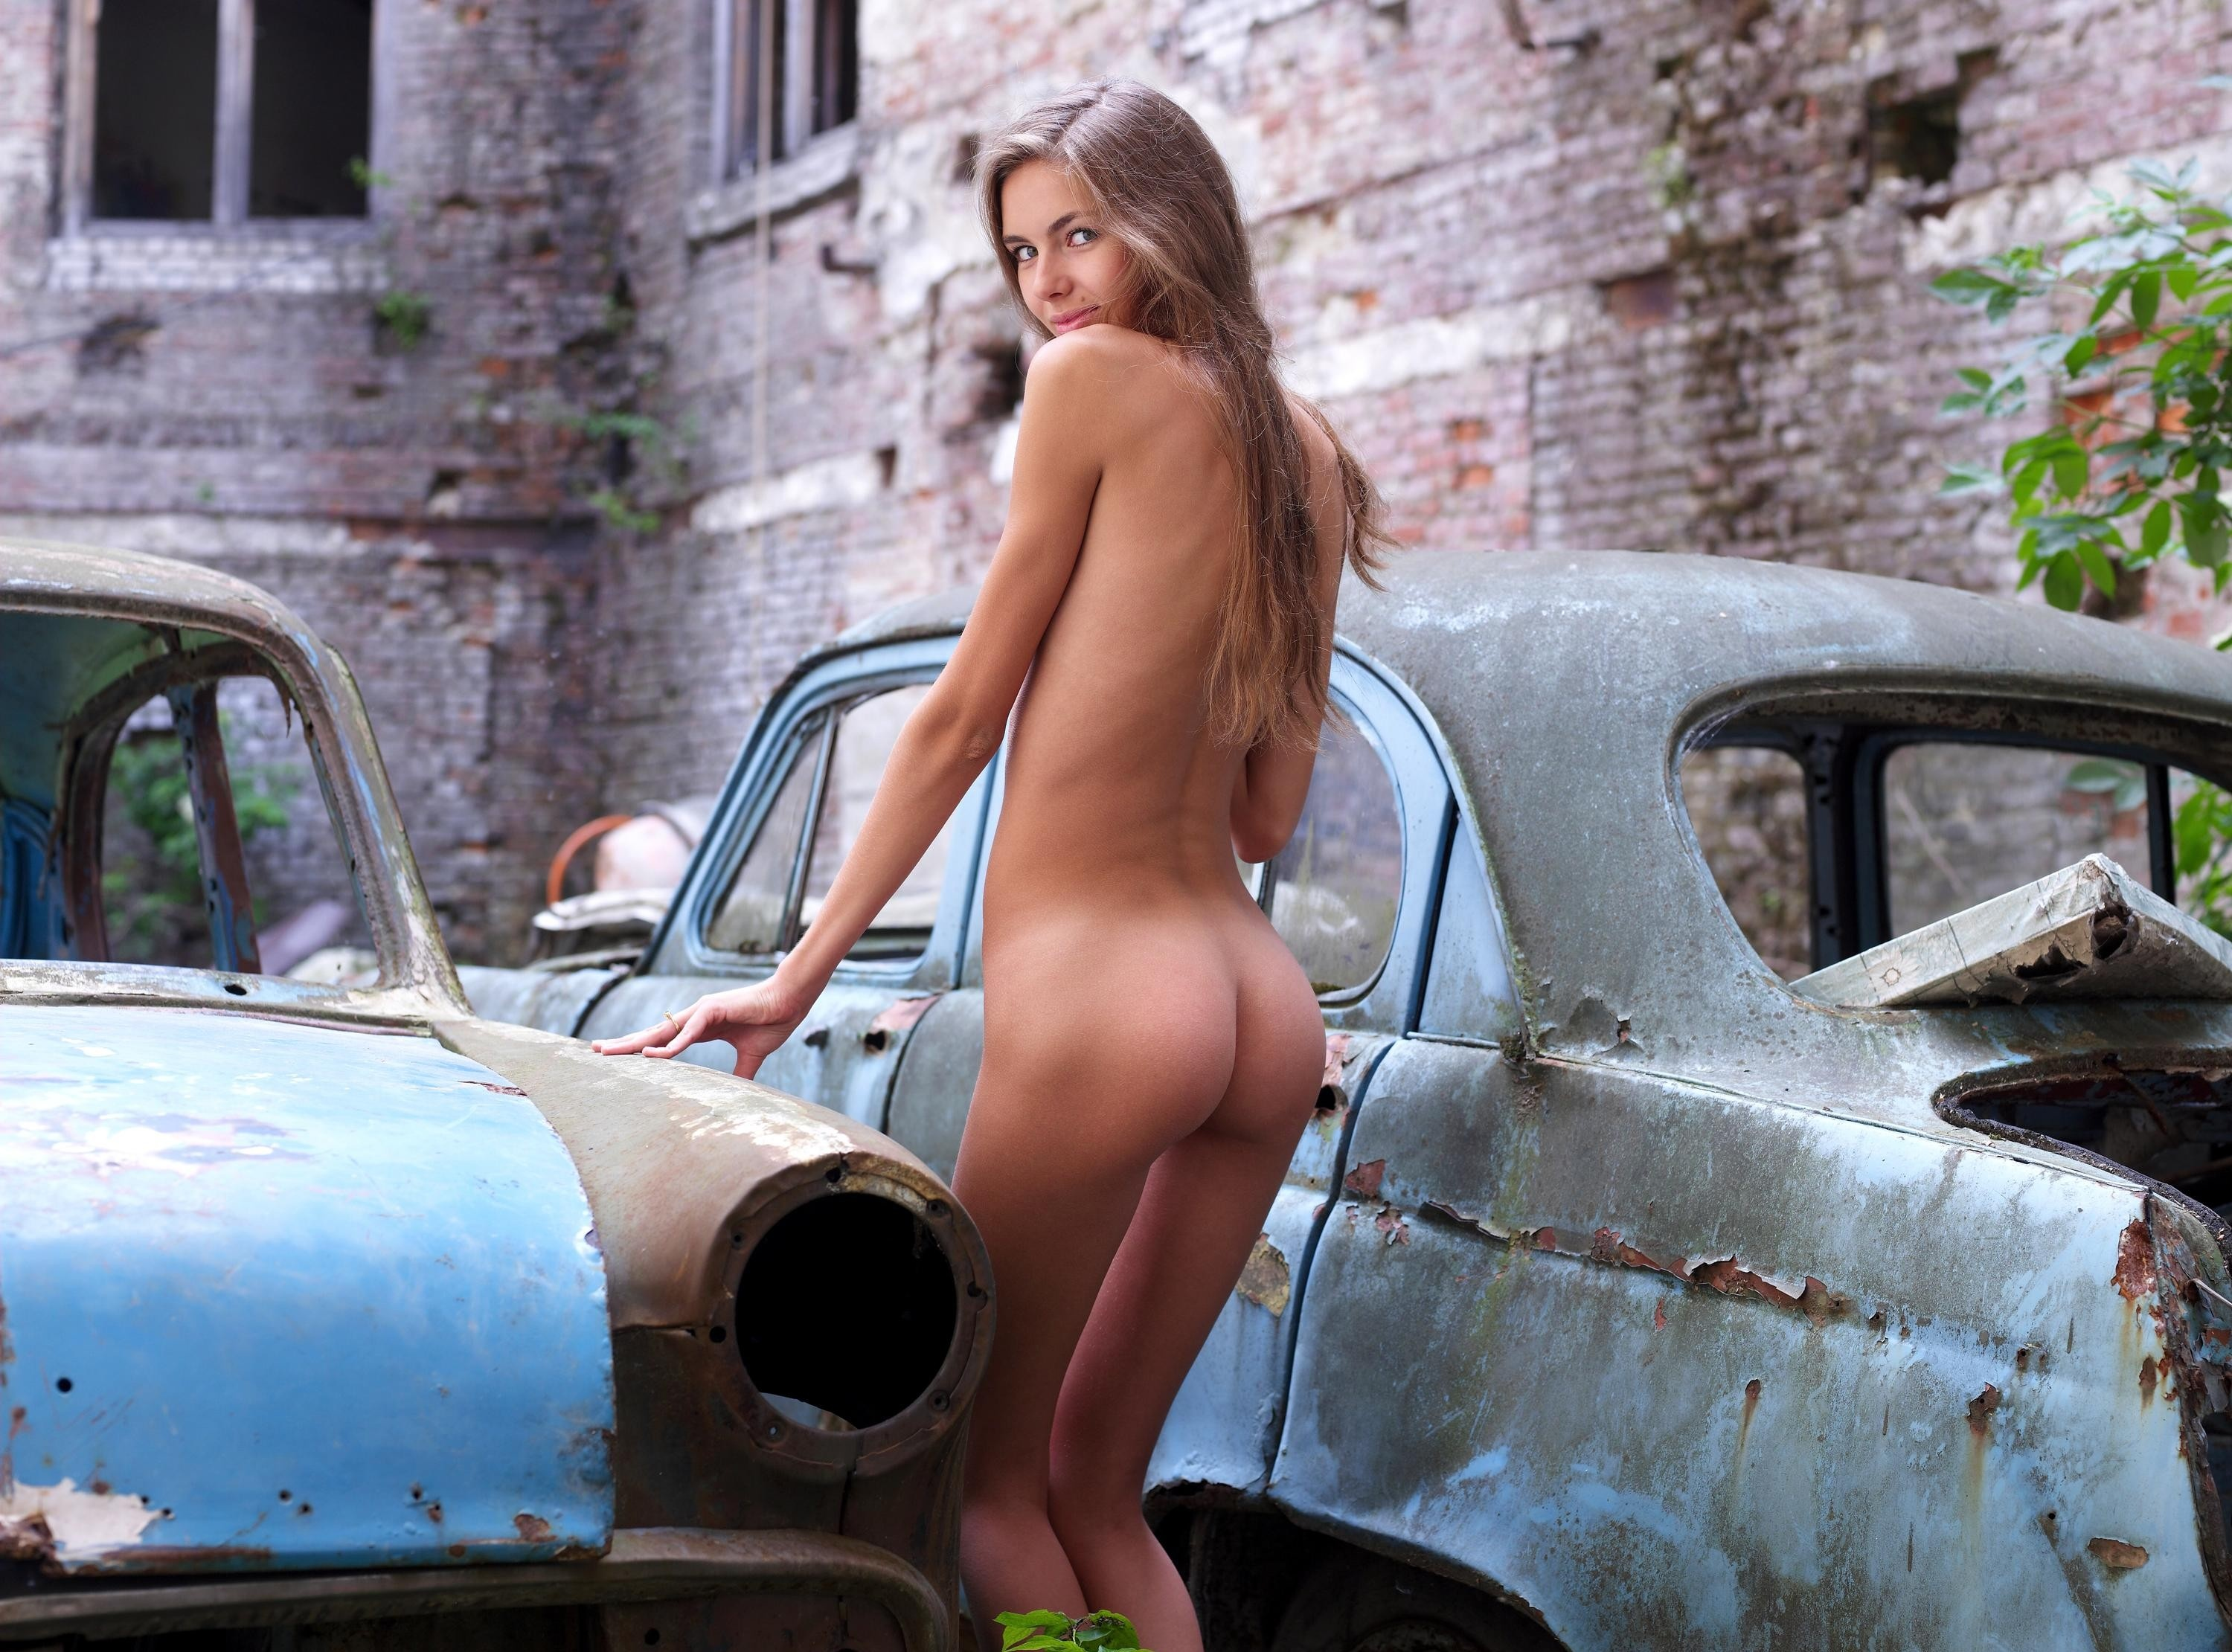 Naked Car Video